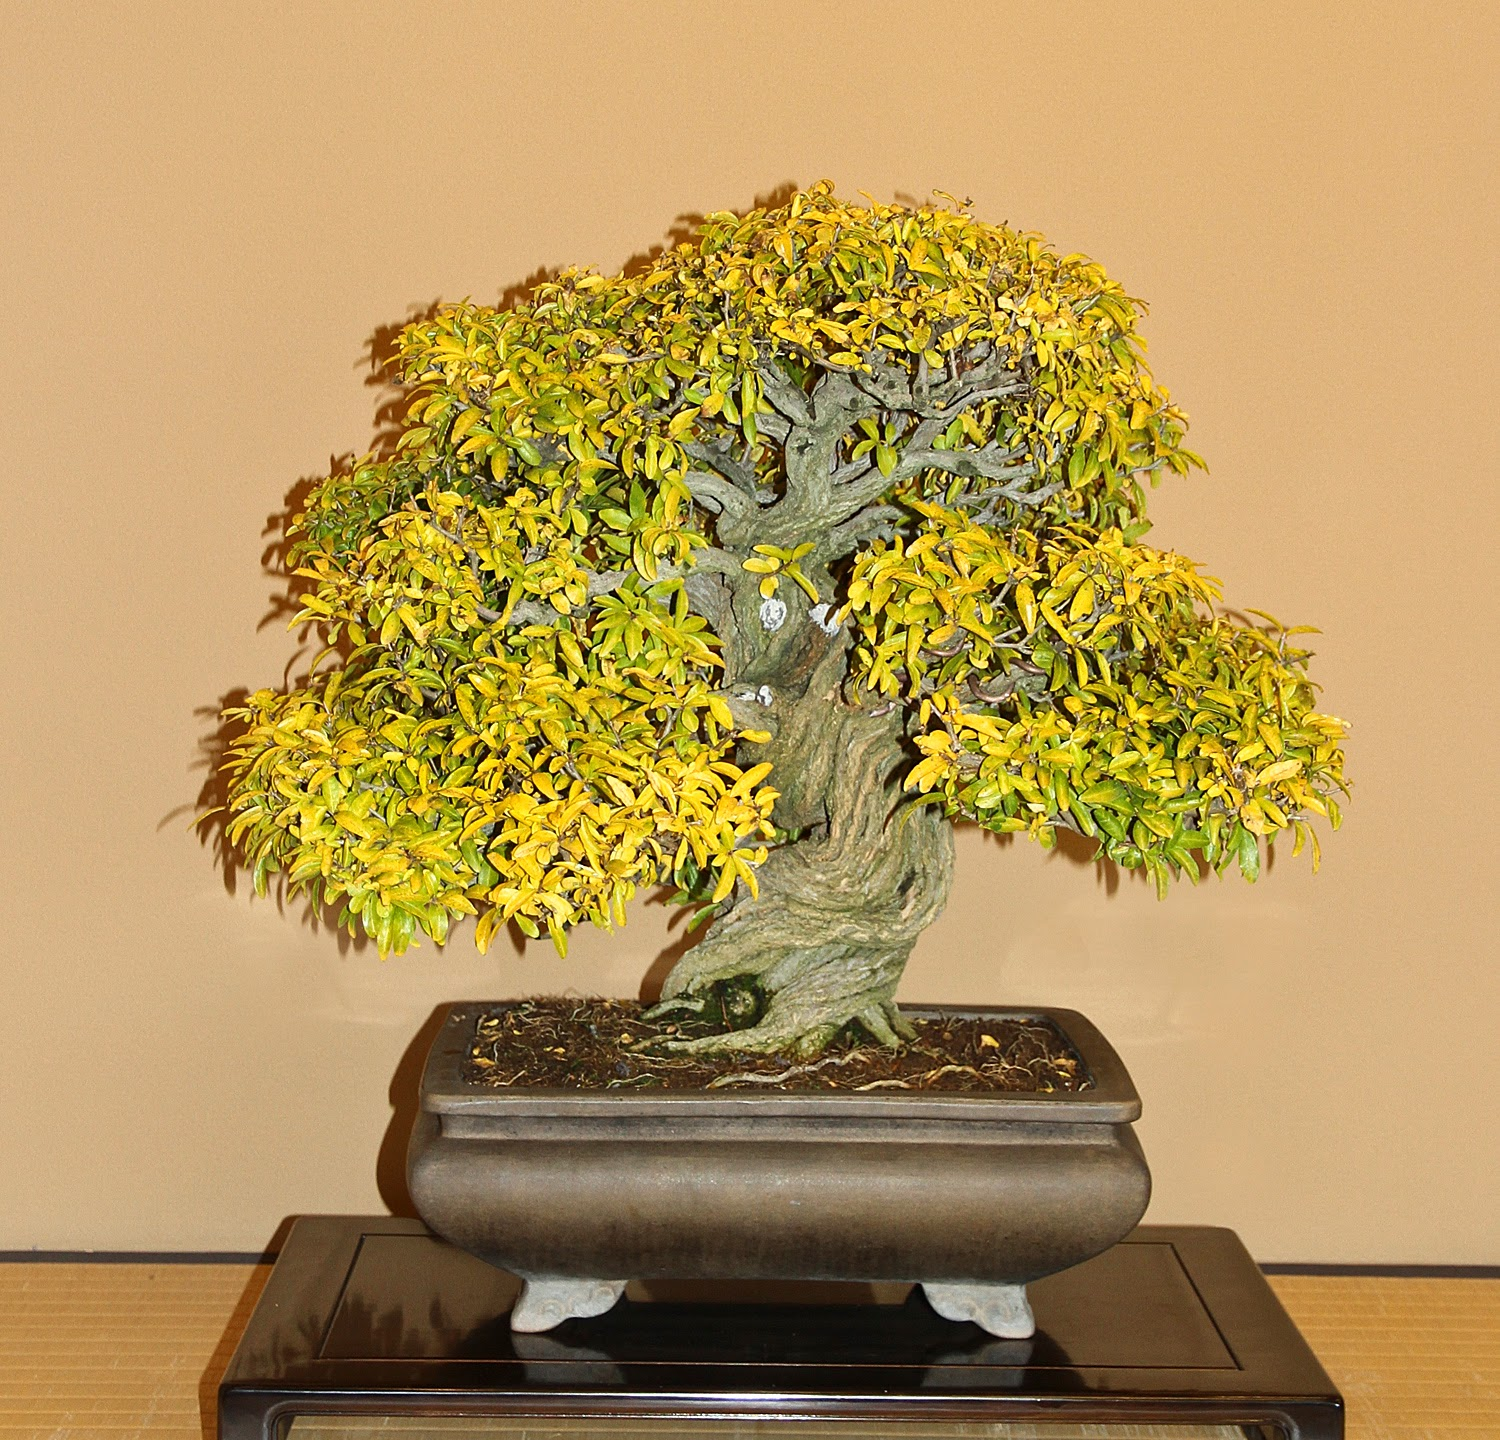 The Little Bonsai December 2013